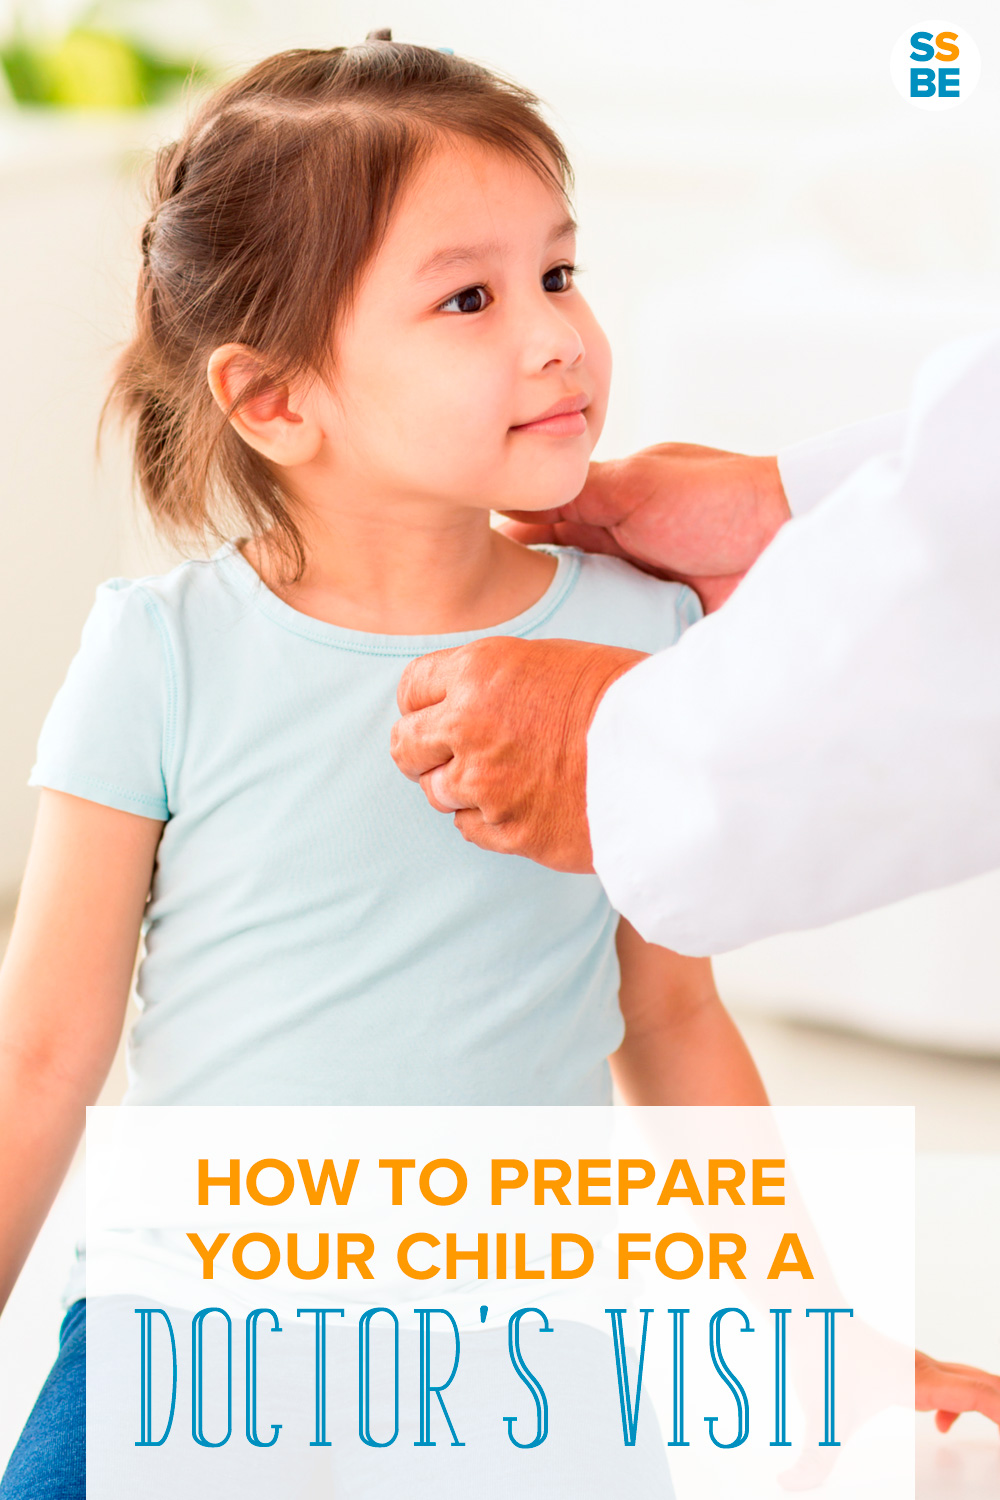 Visiting your child's pediatrician can be scary. Discover how to prepare your child for a doctor's visit, ease the fears and make the experience positive.